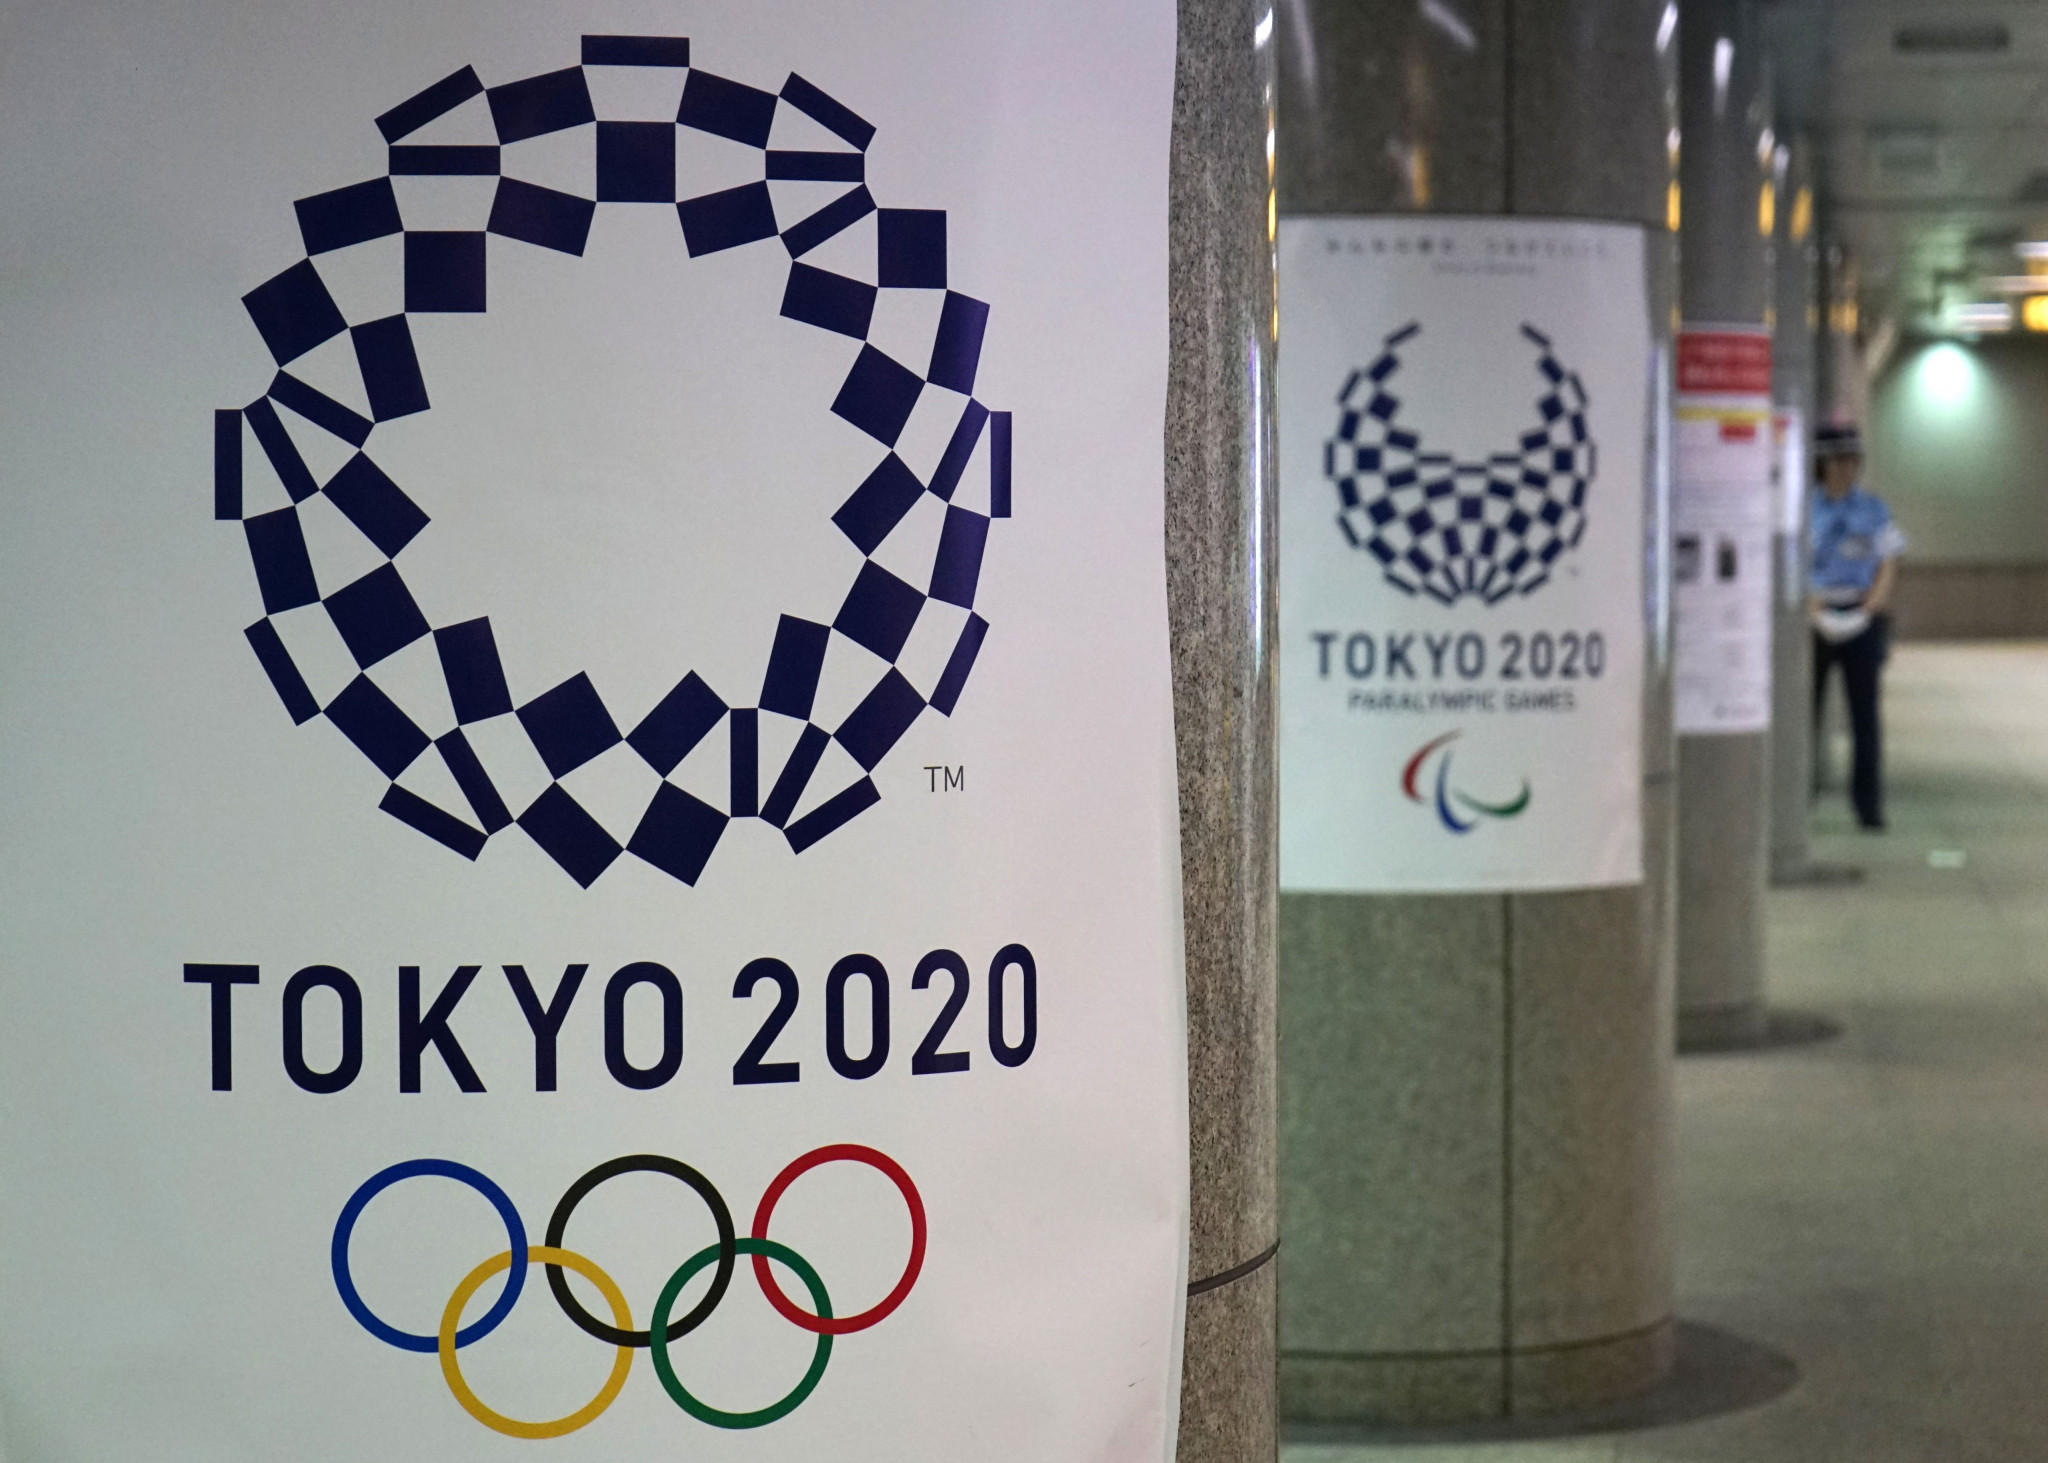 Tokyo 2020 have released the third version of their budget ©Tokyo 2020